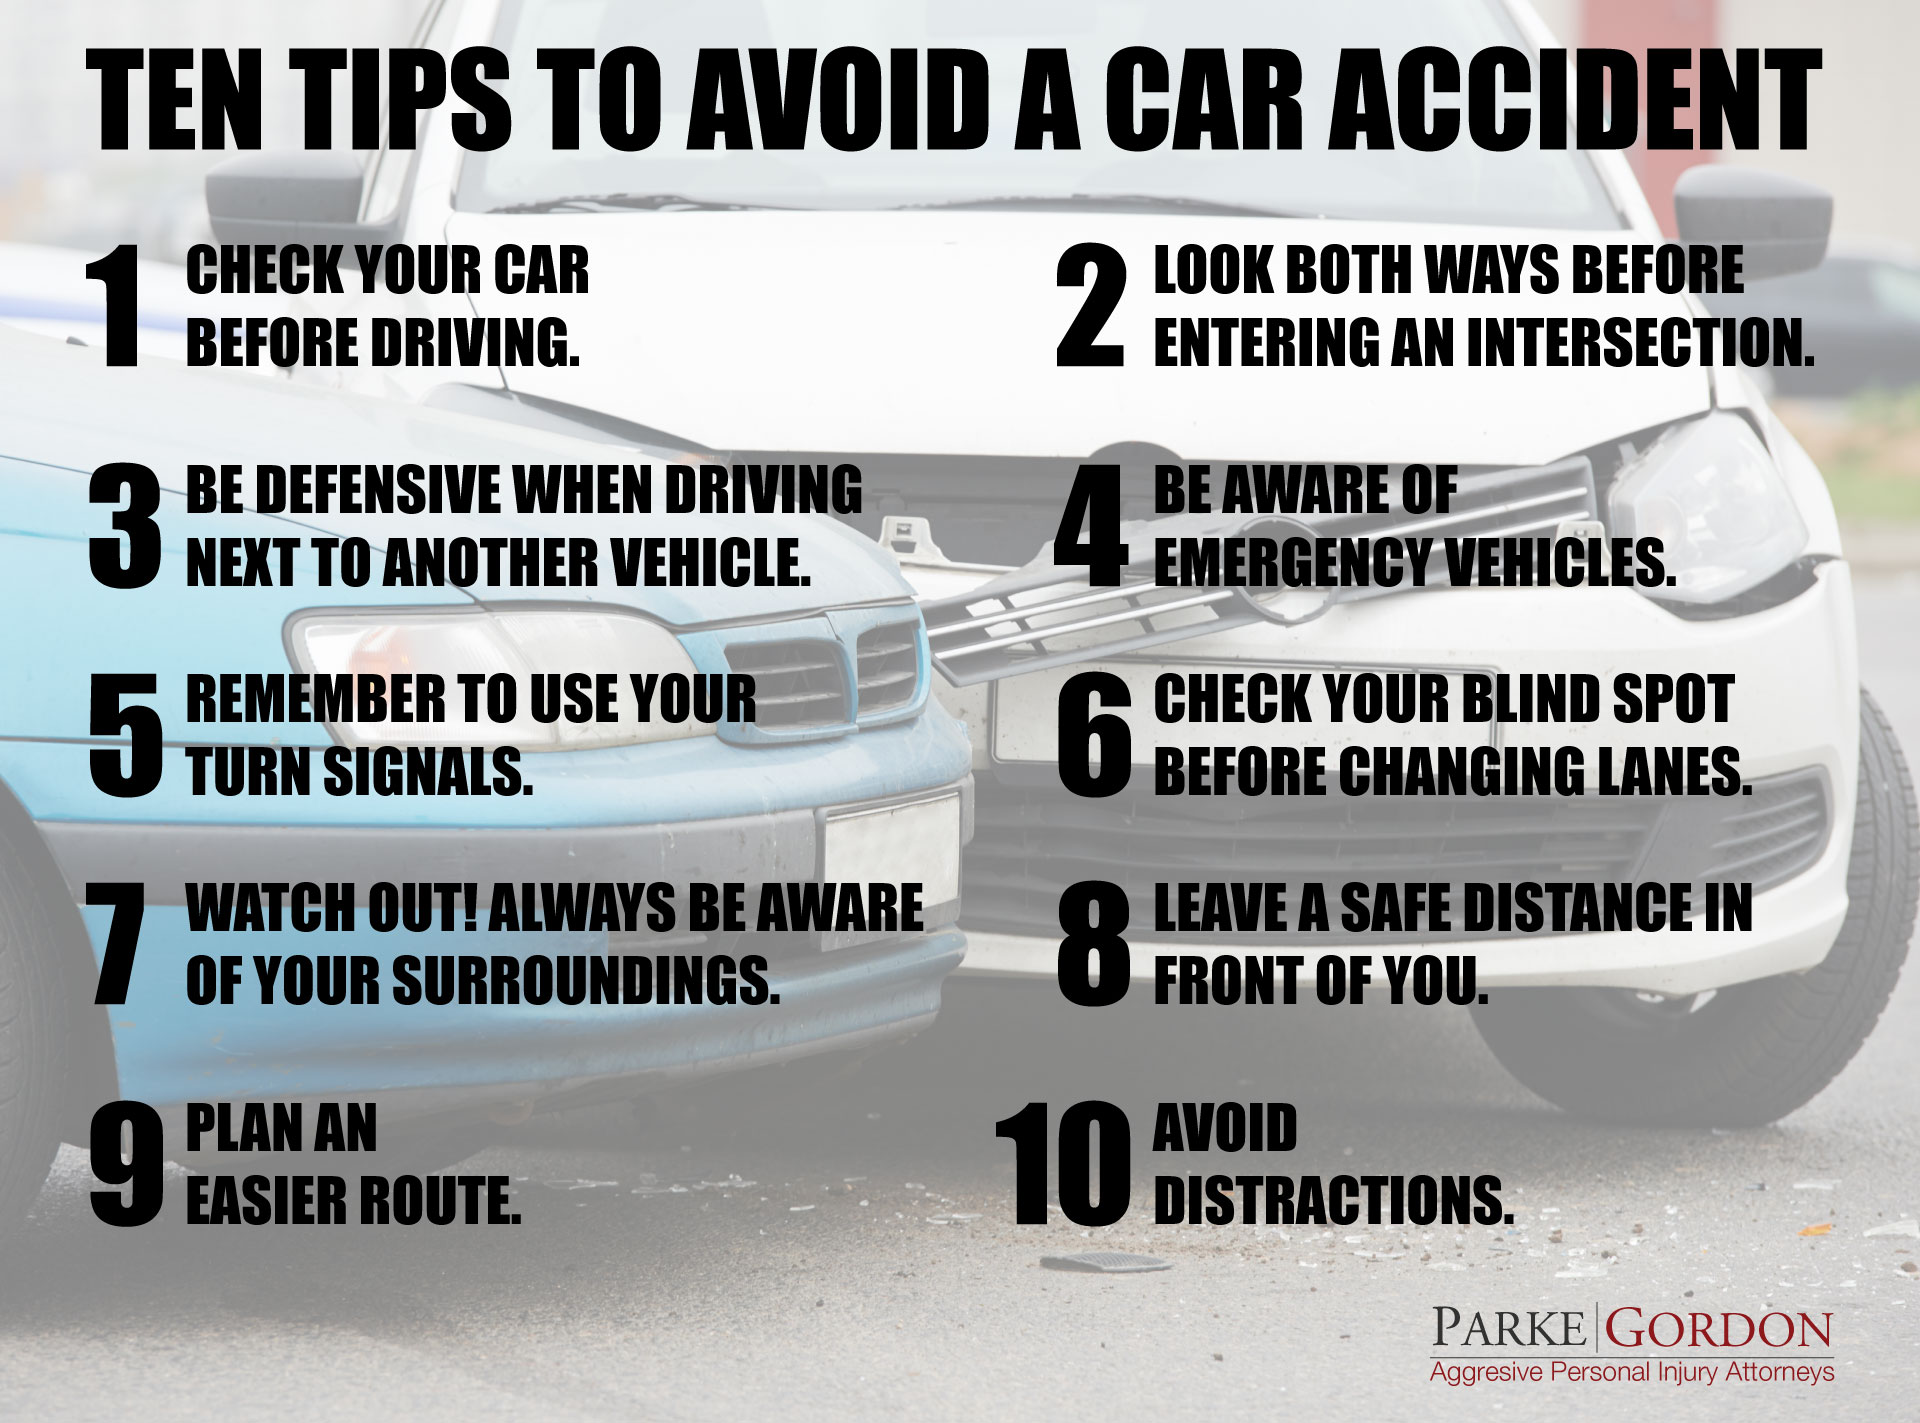 Before driving your vehicle